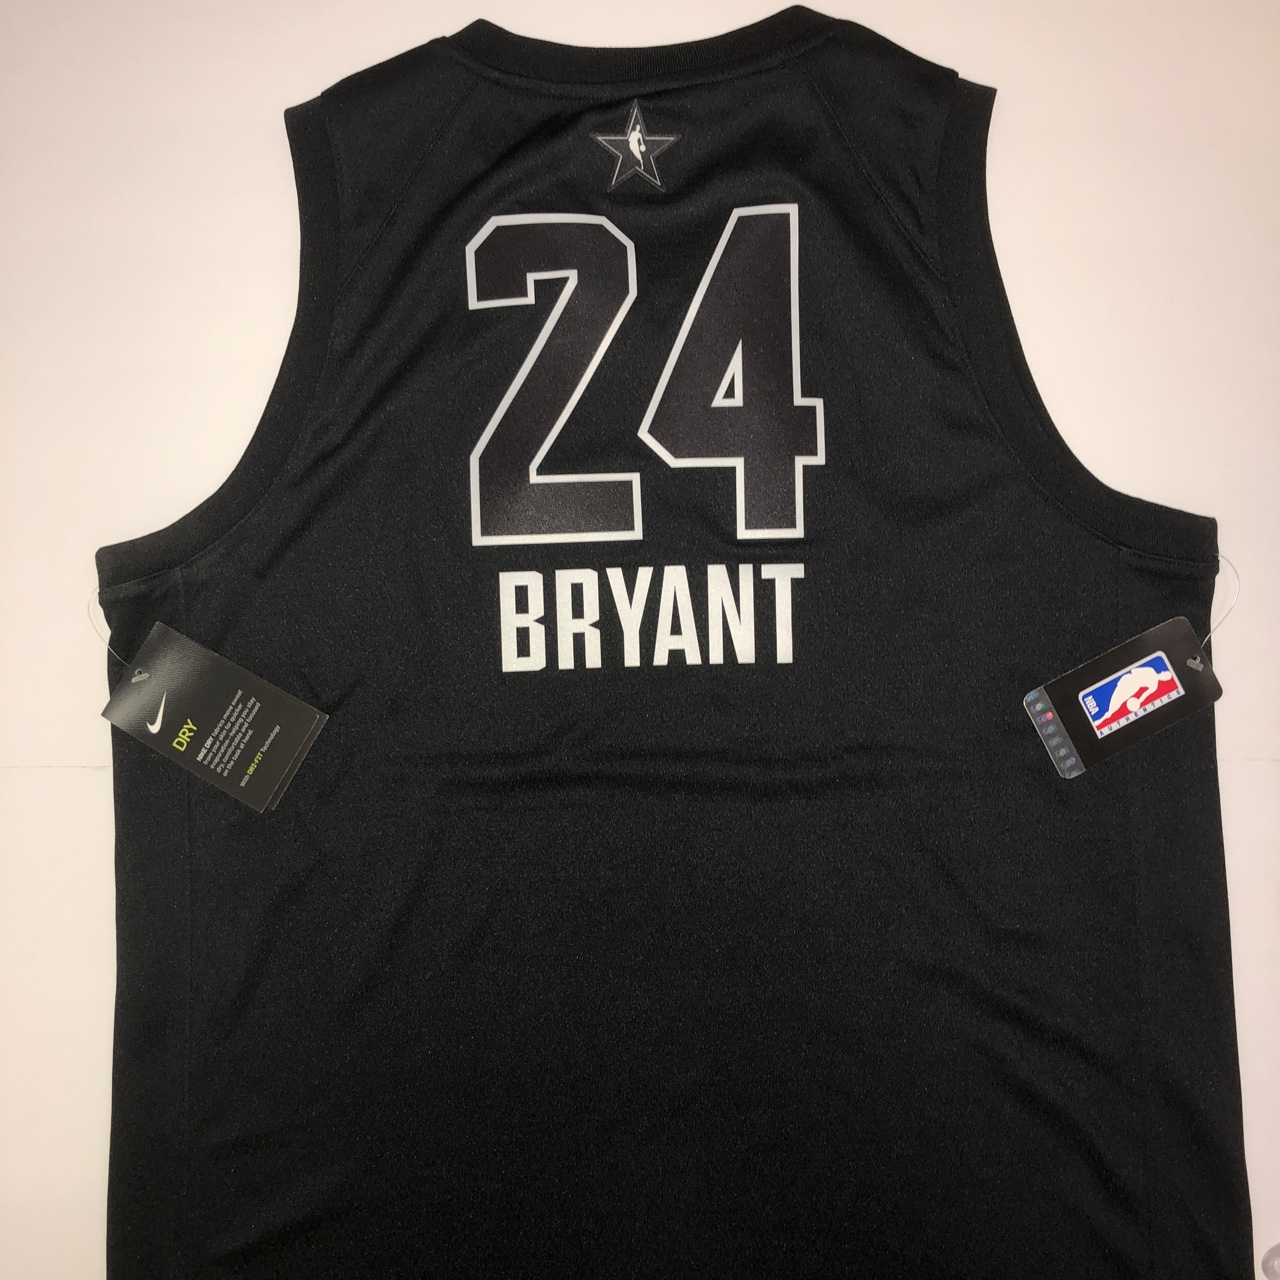 separation shoes 6f3a3 0d74d Authentic 2018 Youth XL NBA All-Star Jersey (Kobe... - Depop